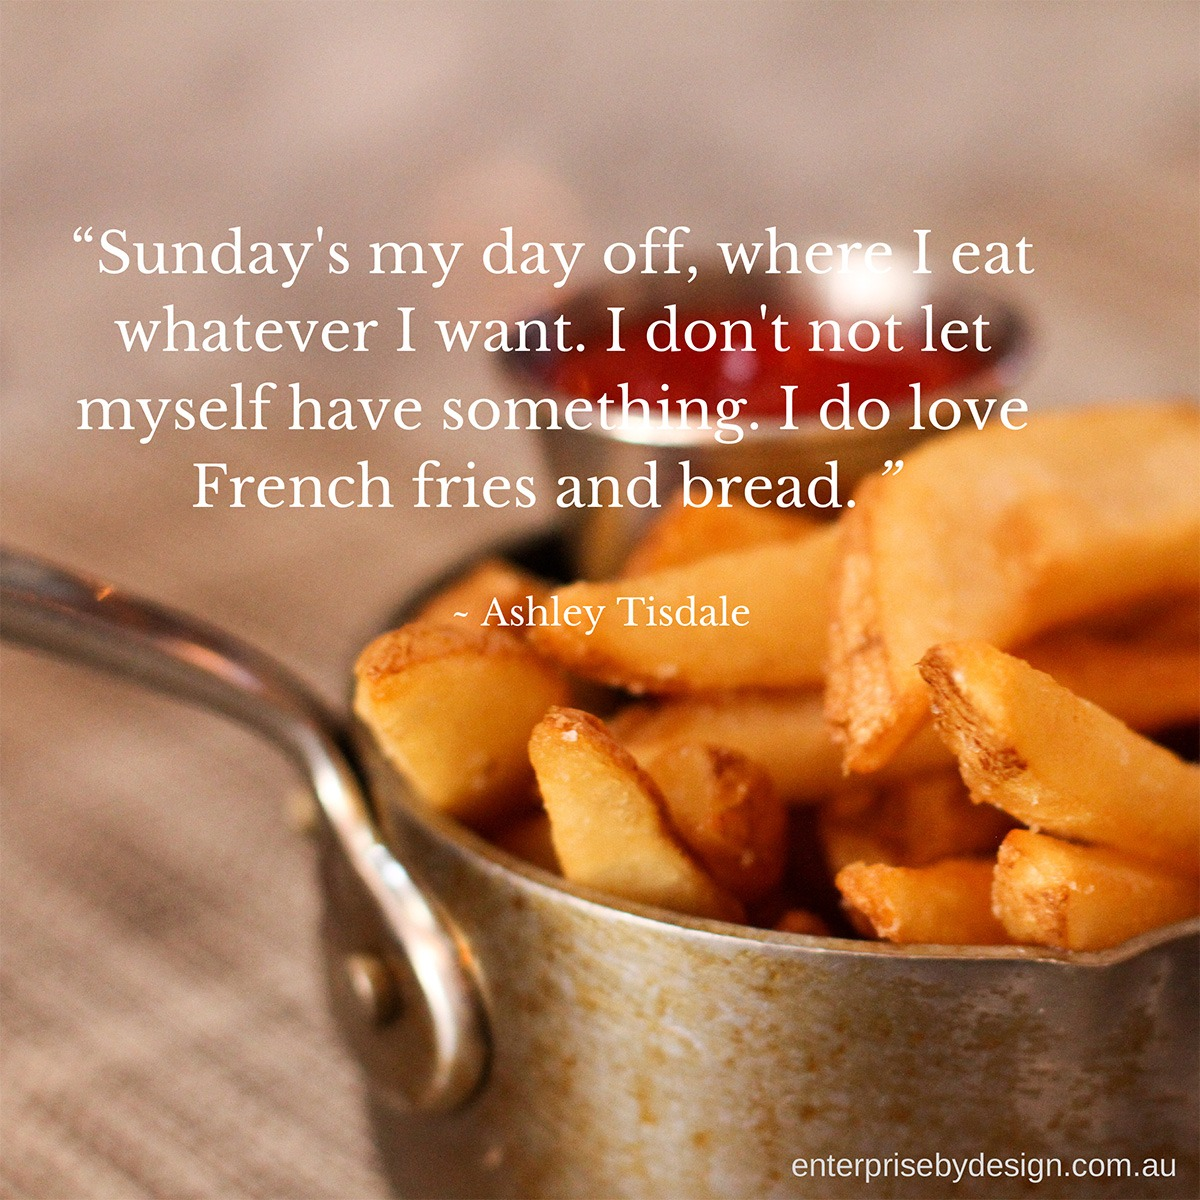 """Sunday's my day off, where I eat what ever I want. I don't not let myself have something. I do love French fries and bread."" ~ Ashley Tisdale"